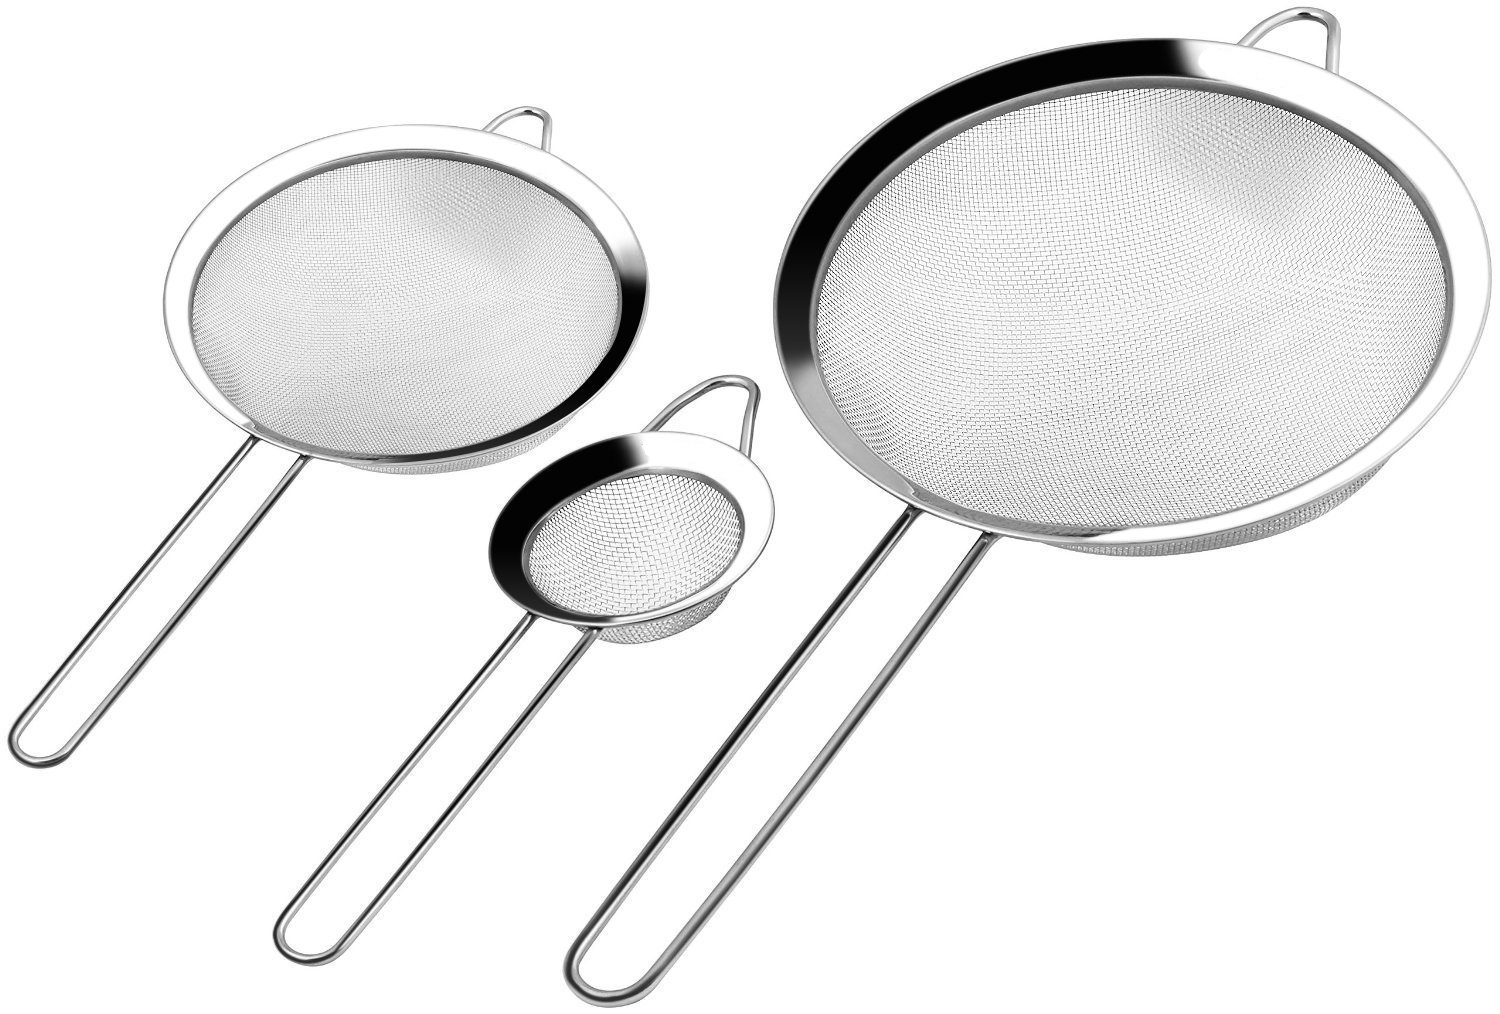 Set of 3 Stainless Steel Mesh Strainer Sieve With Handle Professional